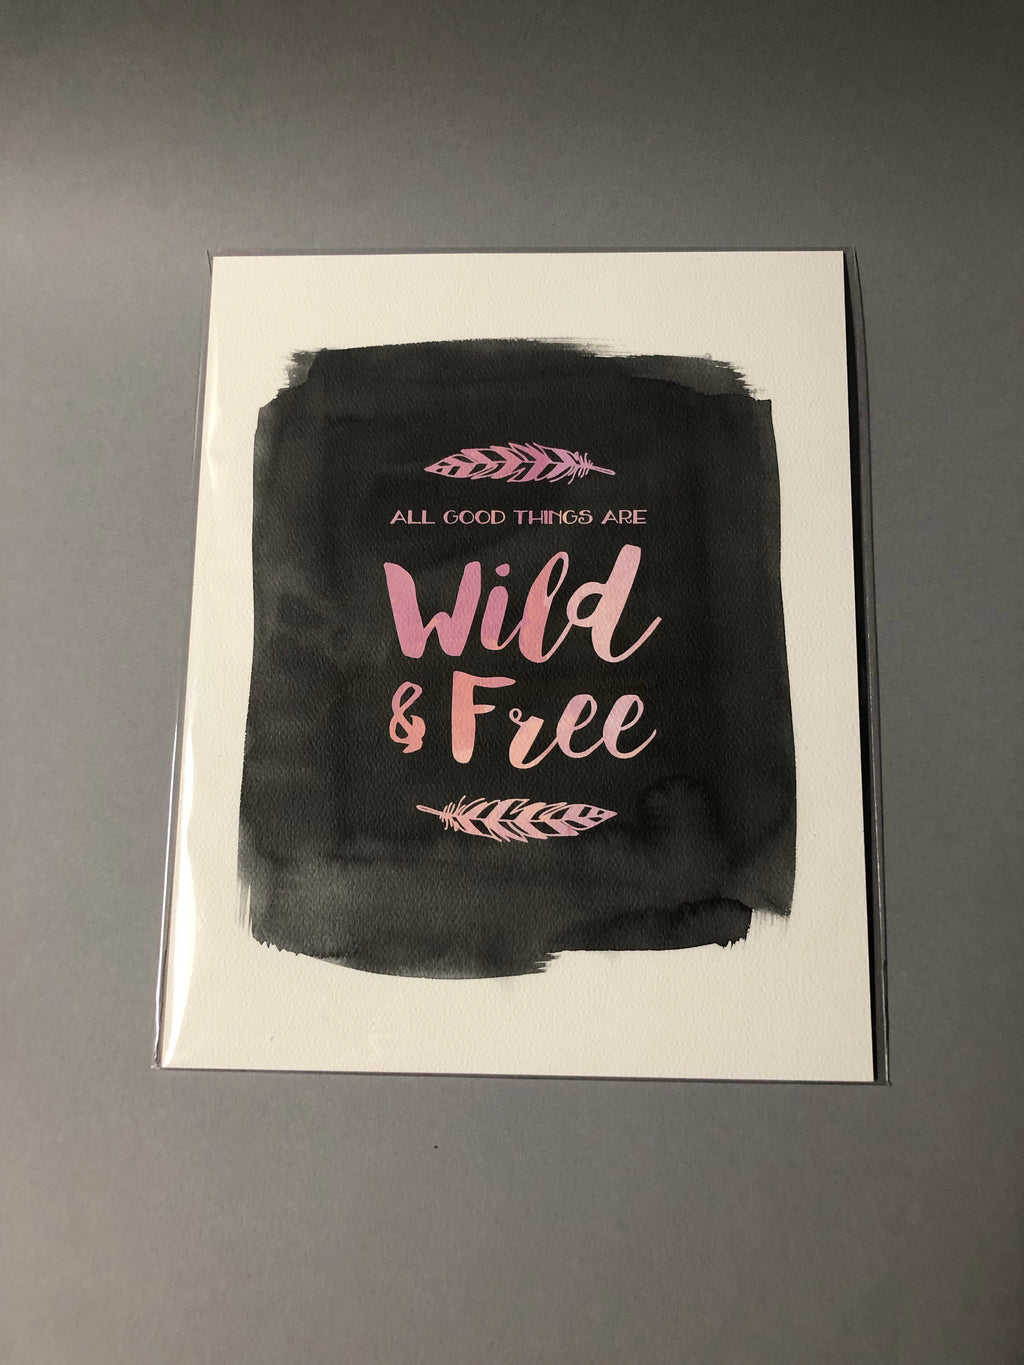 Wild & Free Poster by Presence & Grace 8x10""